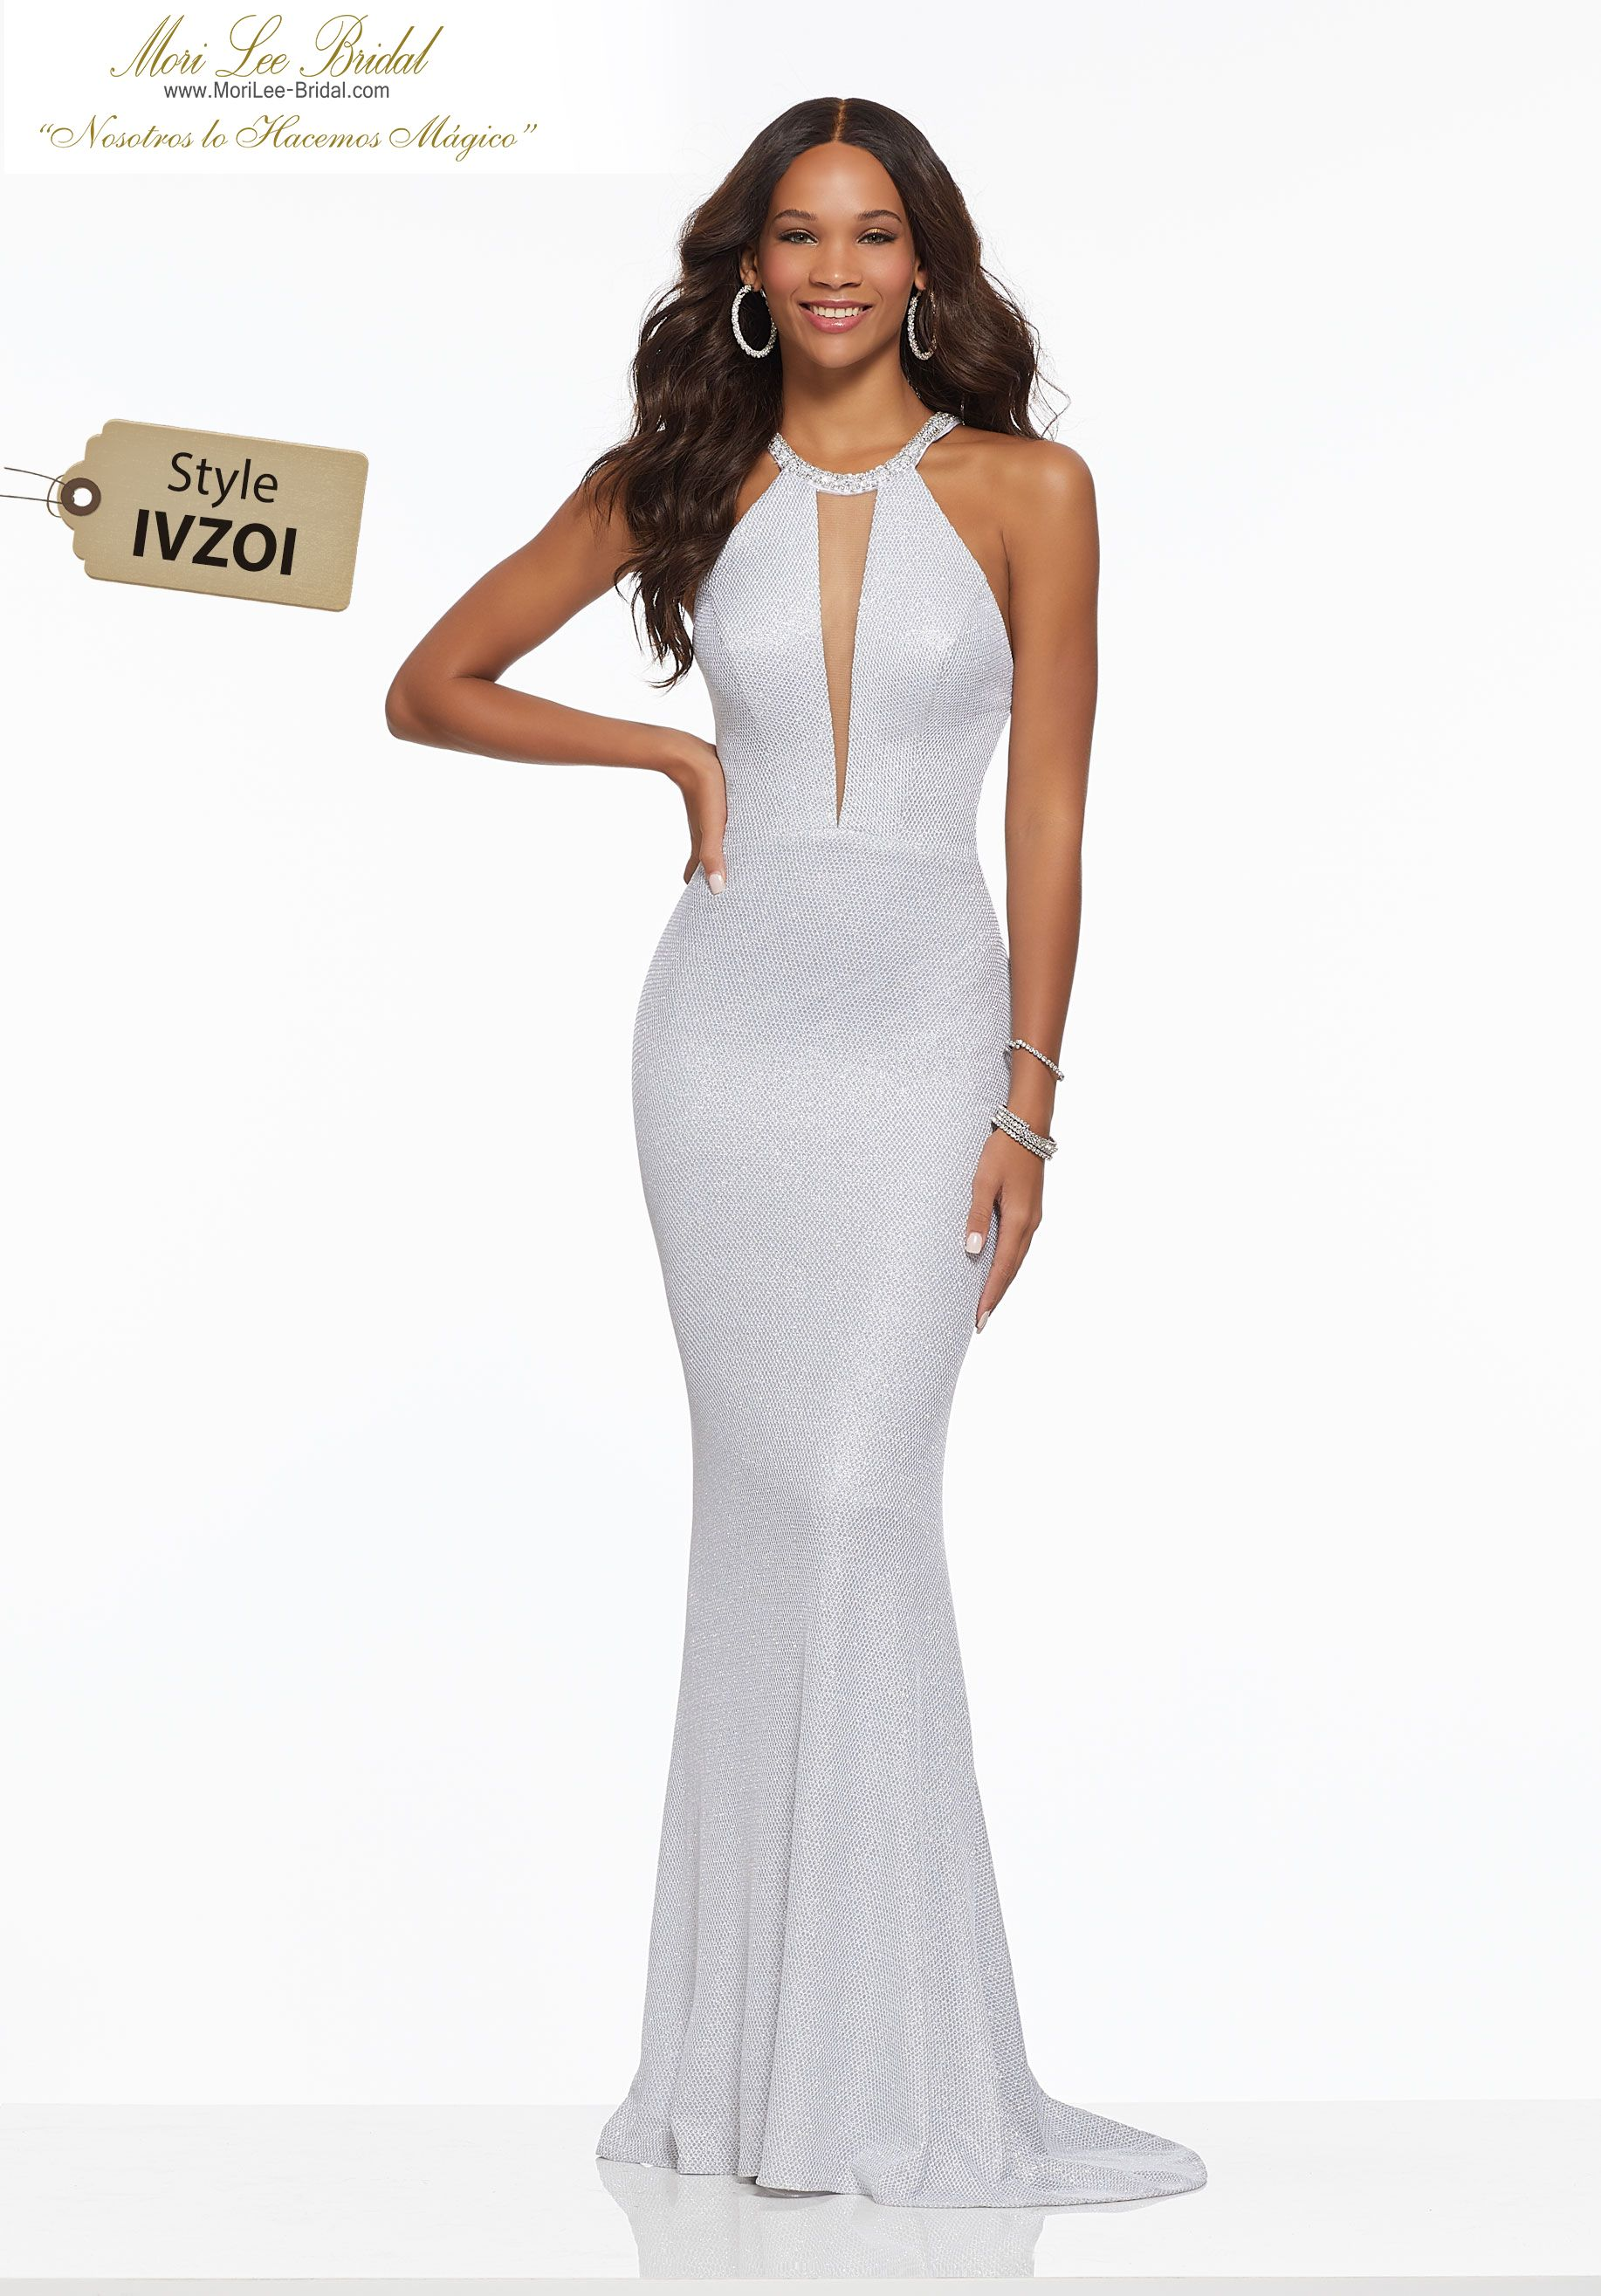 2207680c2 Sparkle Waffle Jersey with Beaded Trim Form Fitting Sparkle Waffle Jersey  Prom Gown Trimmed with Beading